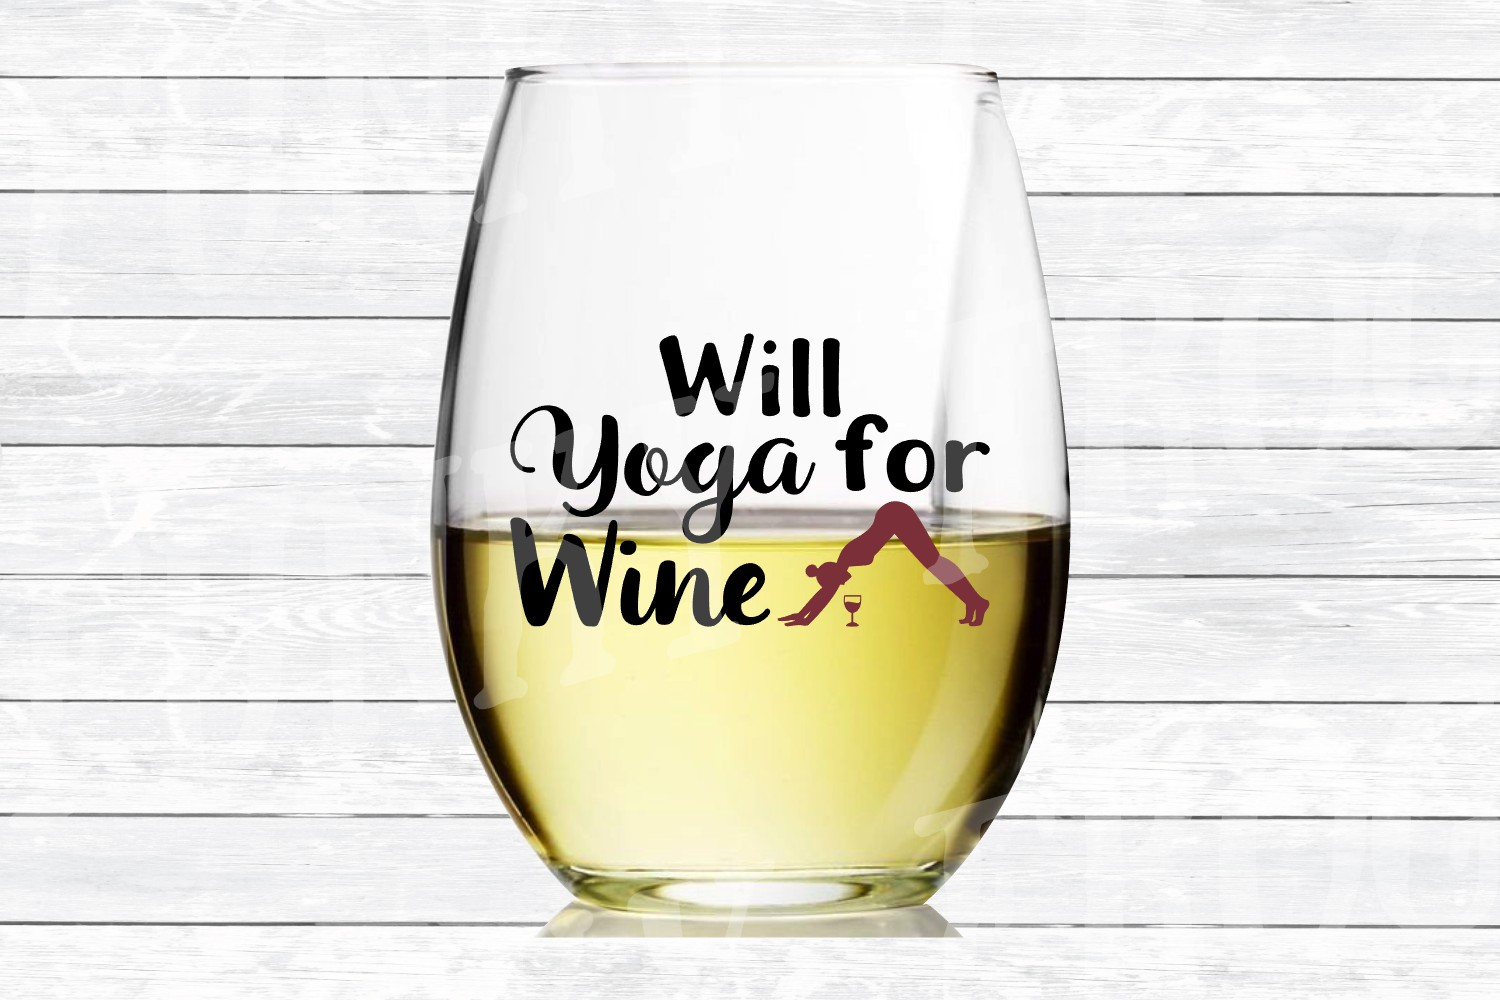 Will Yoga for Wine - SVG Cut File for Crafters example image 2